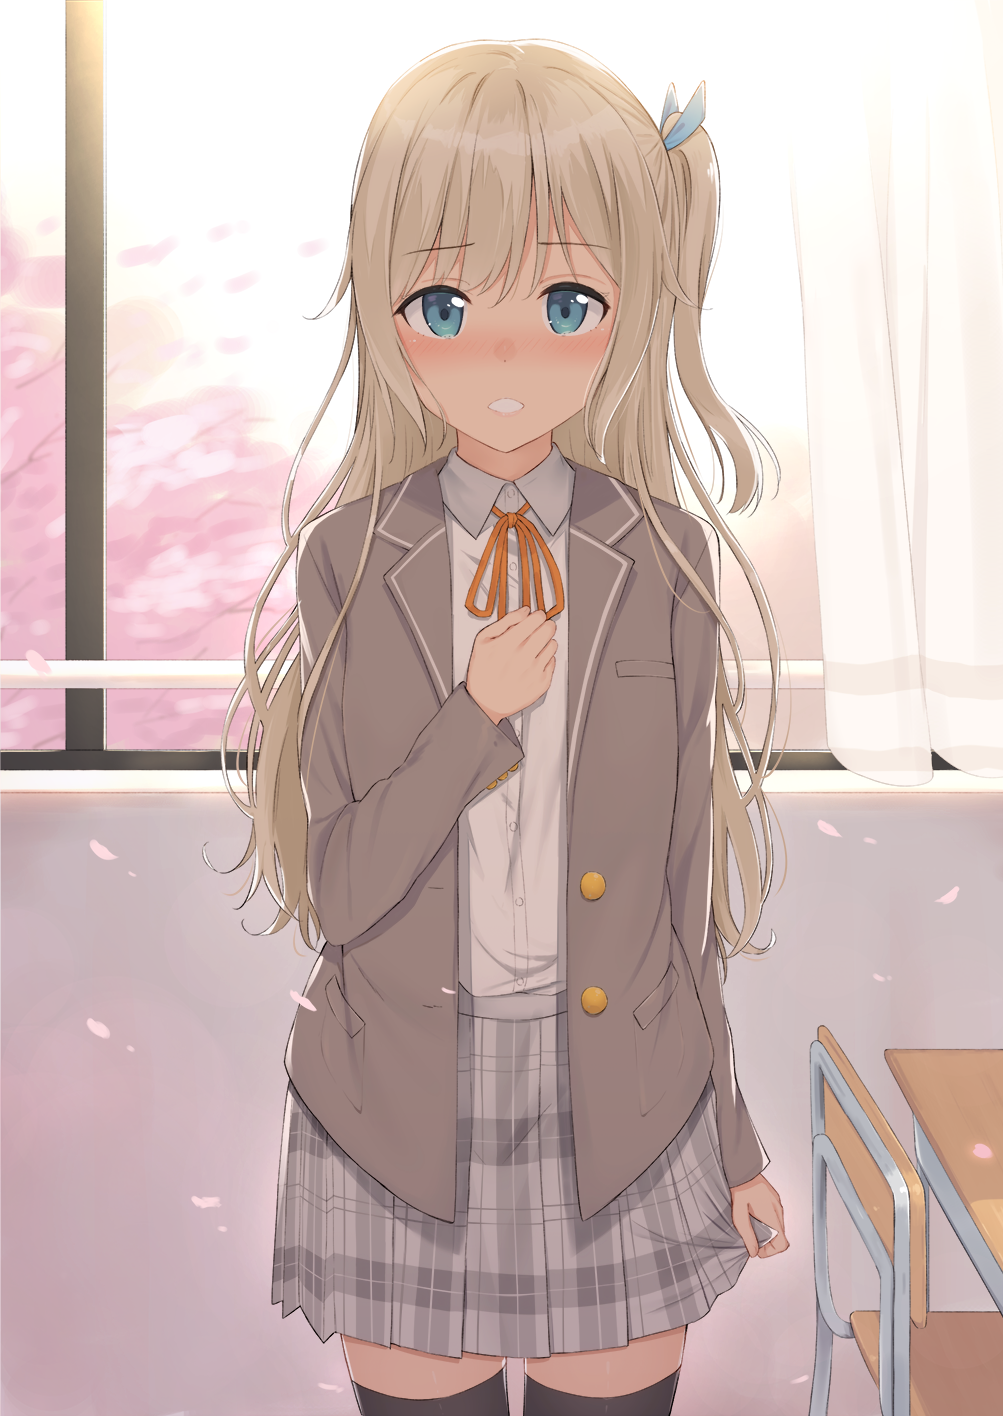 1girl arm_at_side bangs black_legwear blonde_hair blue_eyes blush buttons chair cherry_blossoms classroom commentary_request cowboy_shot curtains day desk dress_shirt eyebrows_visible_through_hair hair_ribbon hand_on_own_chest highres indoors jacket long_hair long_sleeves looking_at_viewer mirai_(mirai76_) neck_ribbon nose_blush one_side_up original parted_lips petals plaid plaid_skirt pleated_skirt ribbon school_desk school_uniform shirt skirt solo standing thigh-highs white_shirt window wing_collar zettai_ryouiki